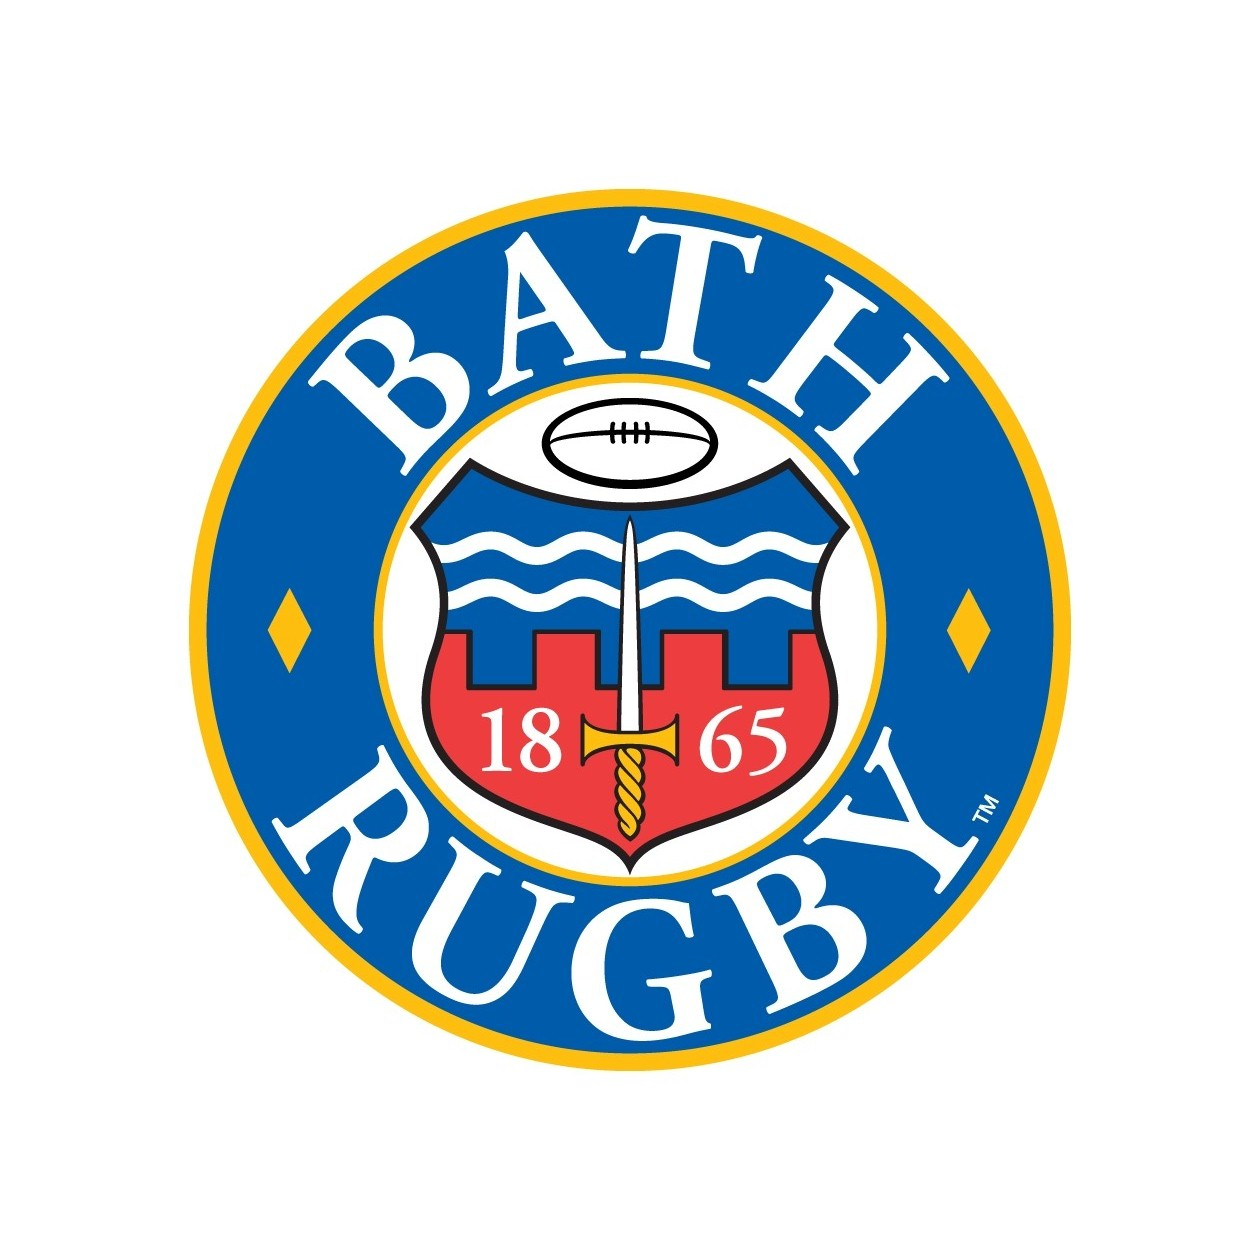 RUGBY: Bath to open Premiership campaign with Sharks test